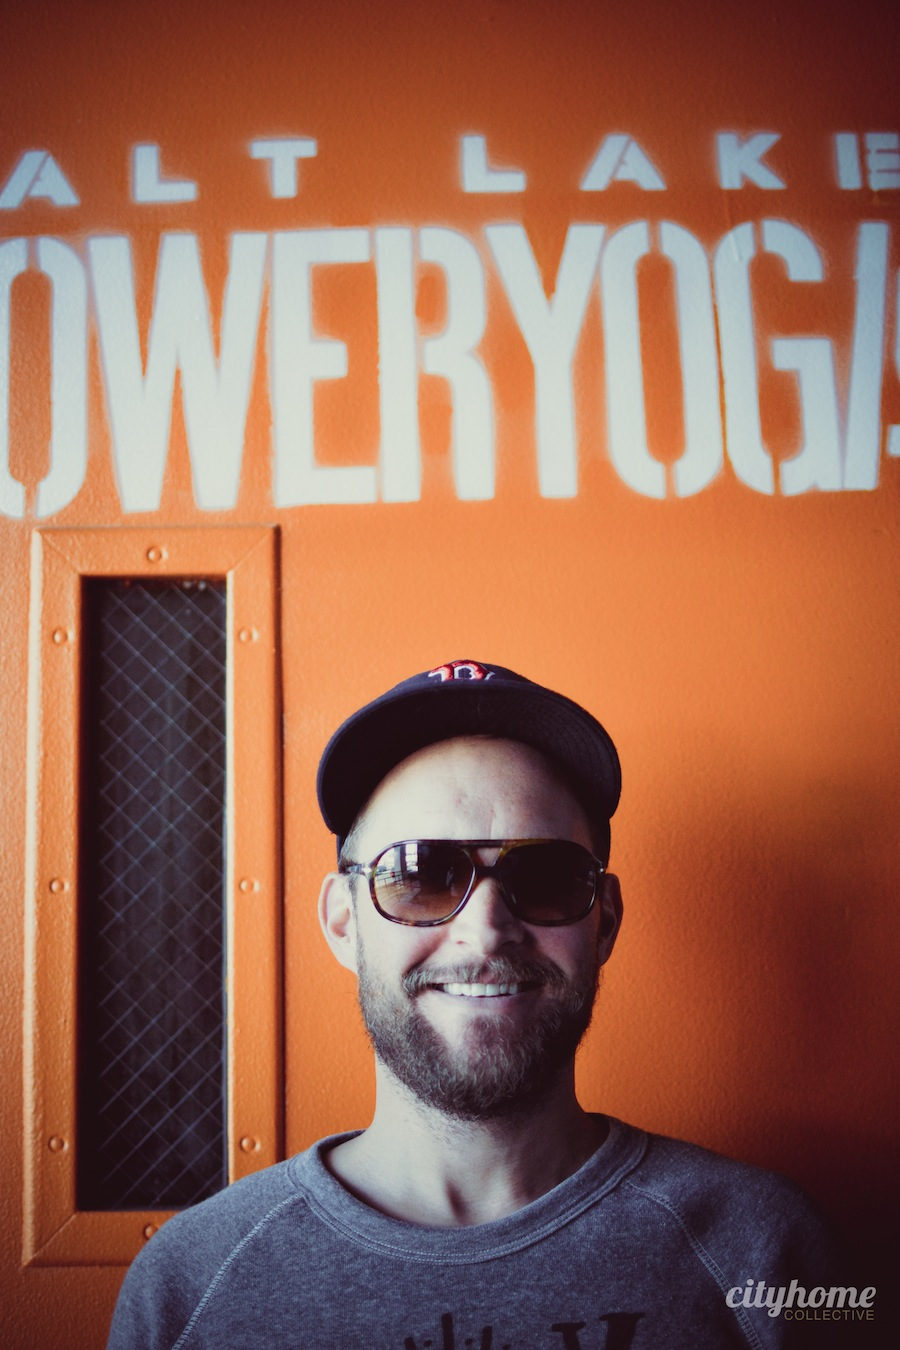 Salt-Lake-Power-Yoga-Local-Business-1